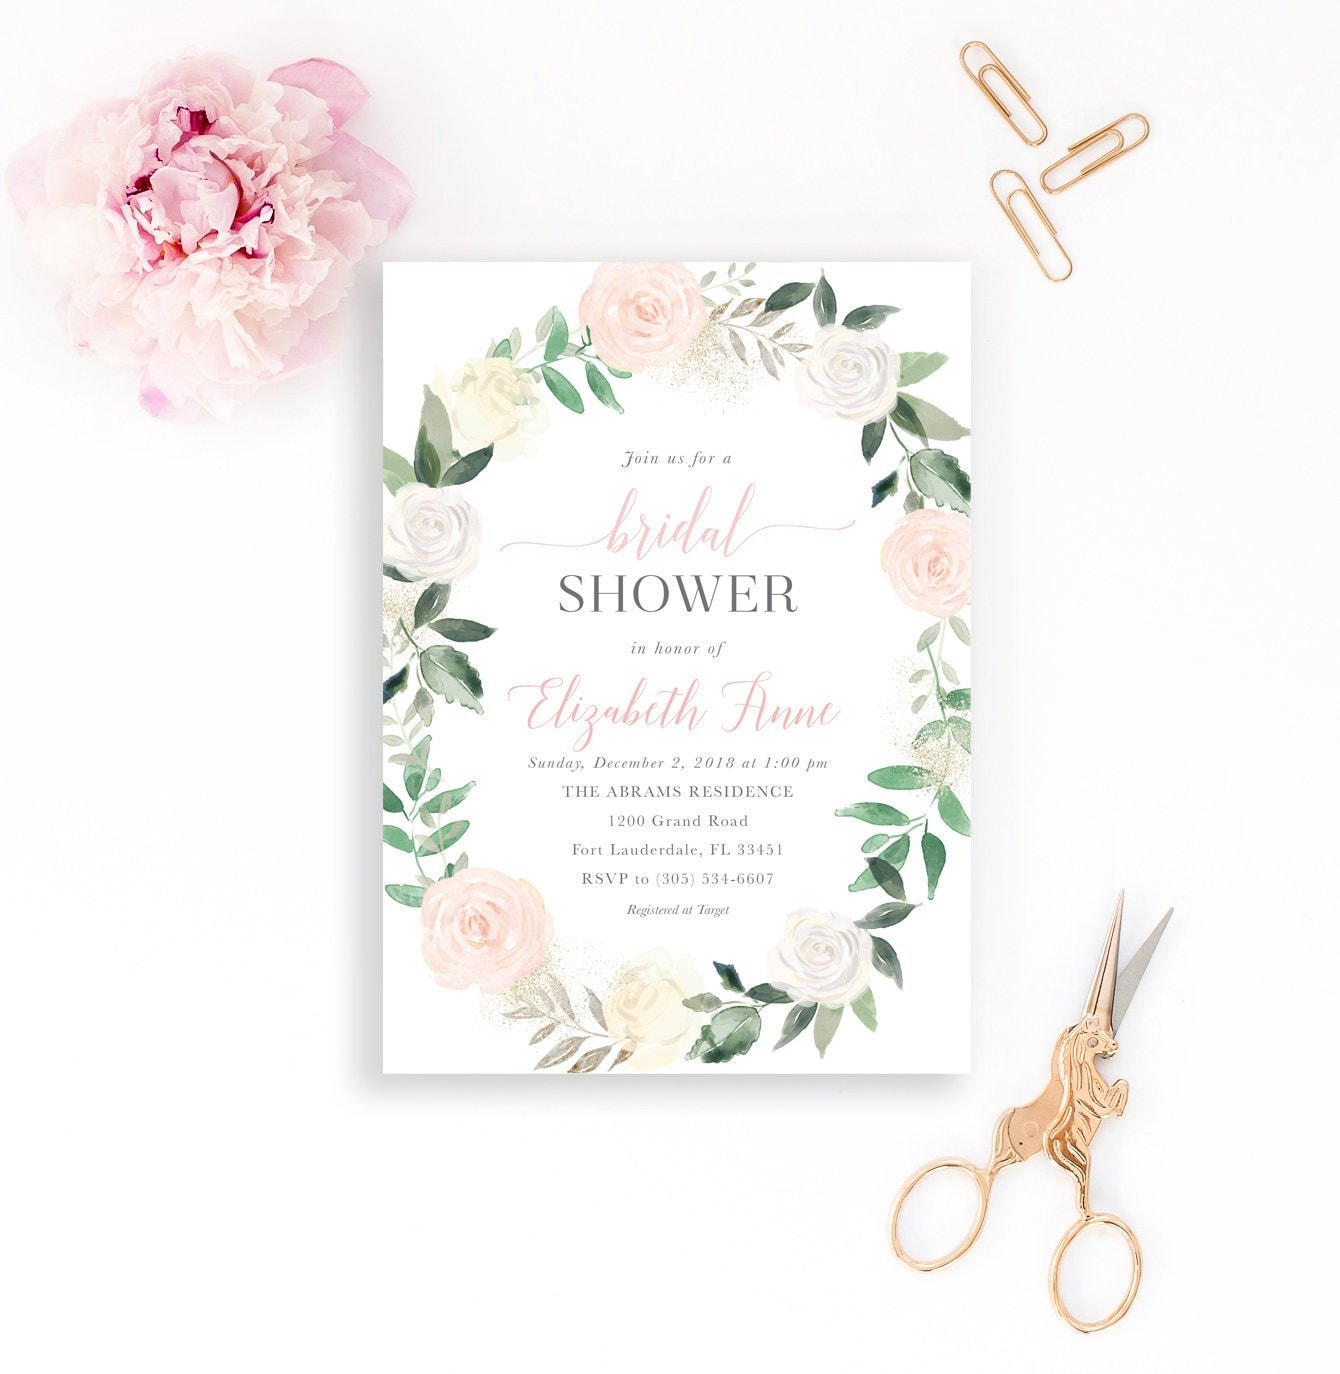 Bridal shower invitation blush bridal shower invitation garden bridal shower invitation blush bridal shower invitation garden bridal shower bridal shower brunch pink floral bridal shower invitation filmwisefo